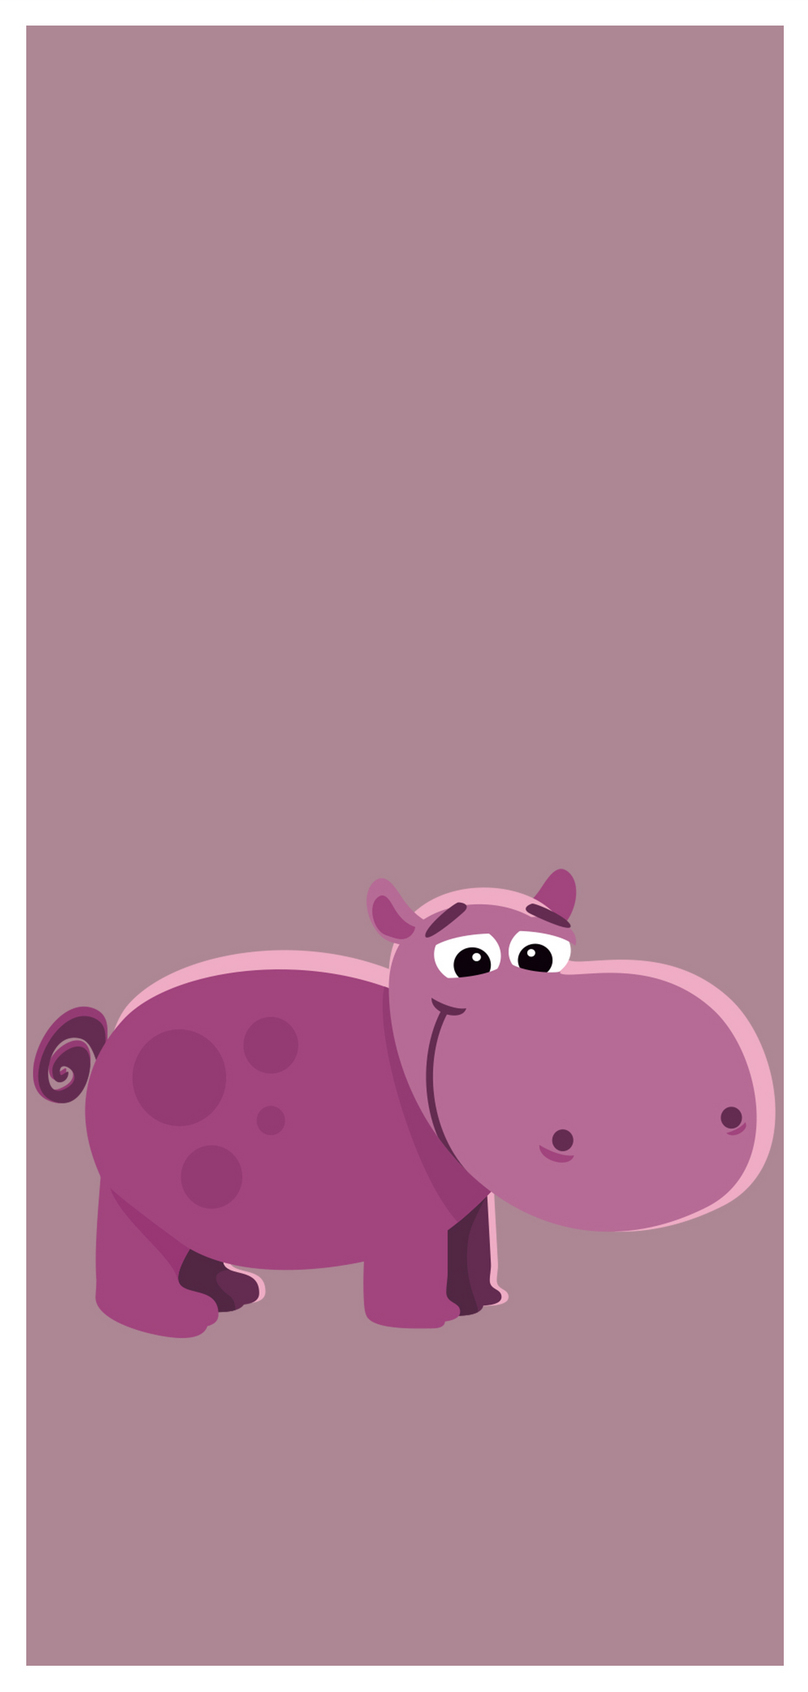 Lovely Hippopotamus Mobile Wallpaper Backgrounds Images Free